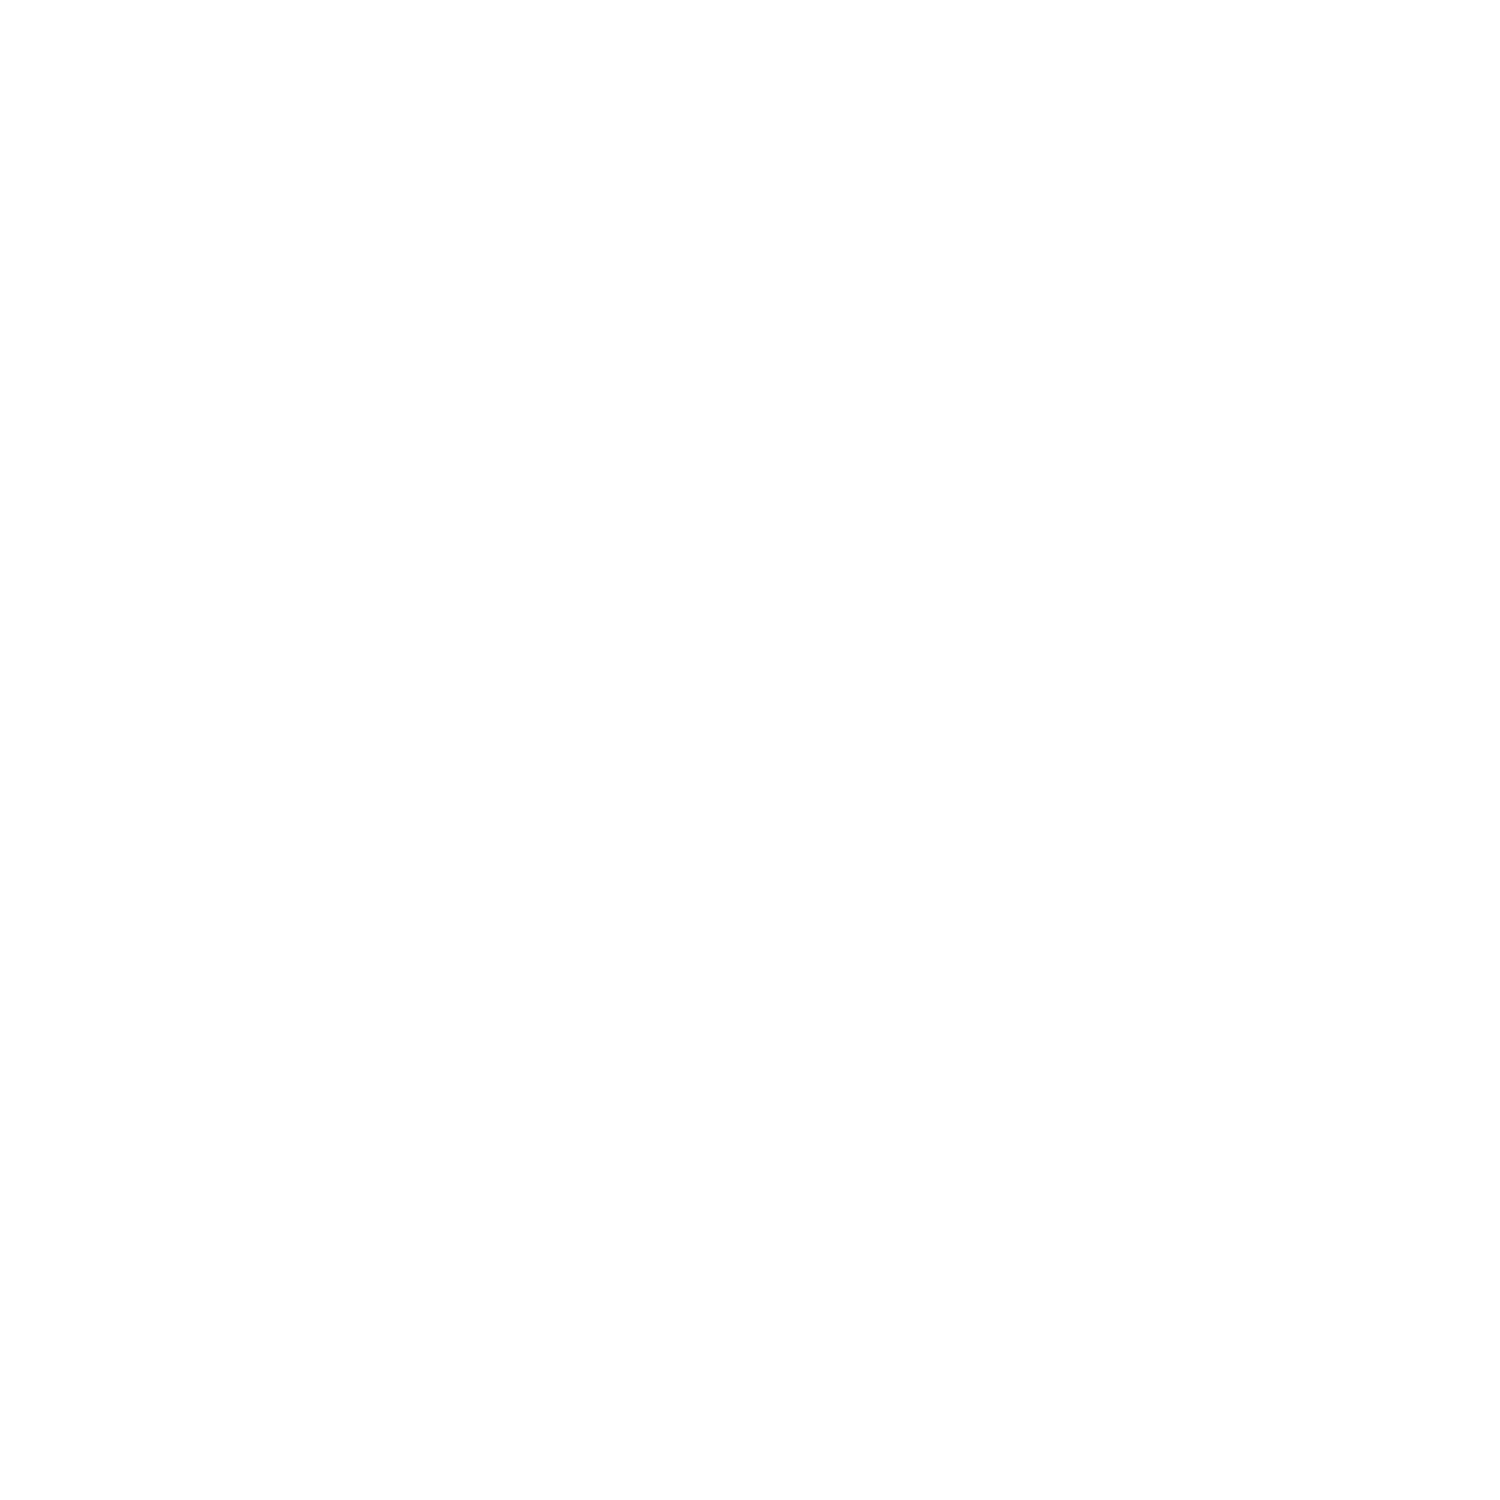 Oak Matters Bespoke Oak Framing & Carpentry